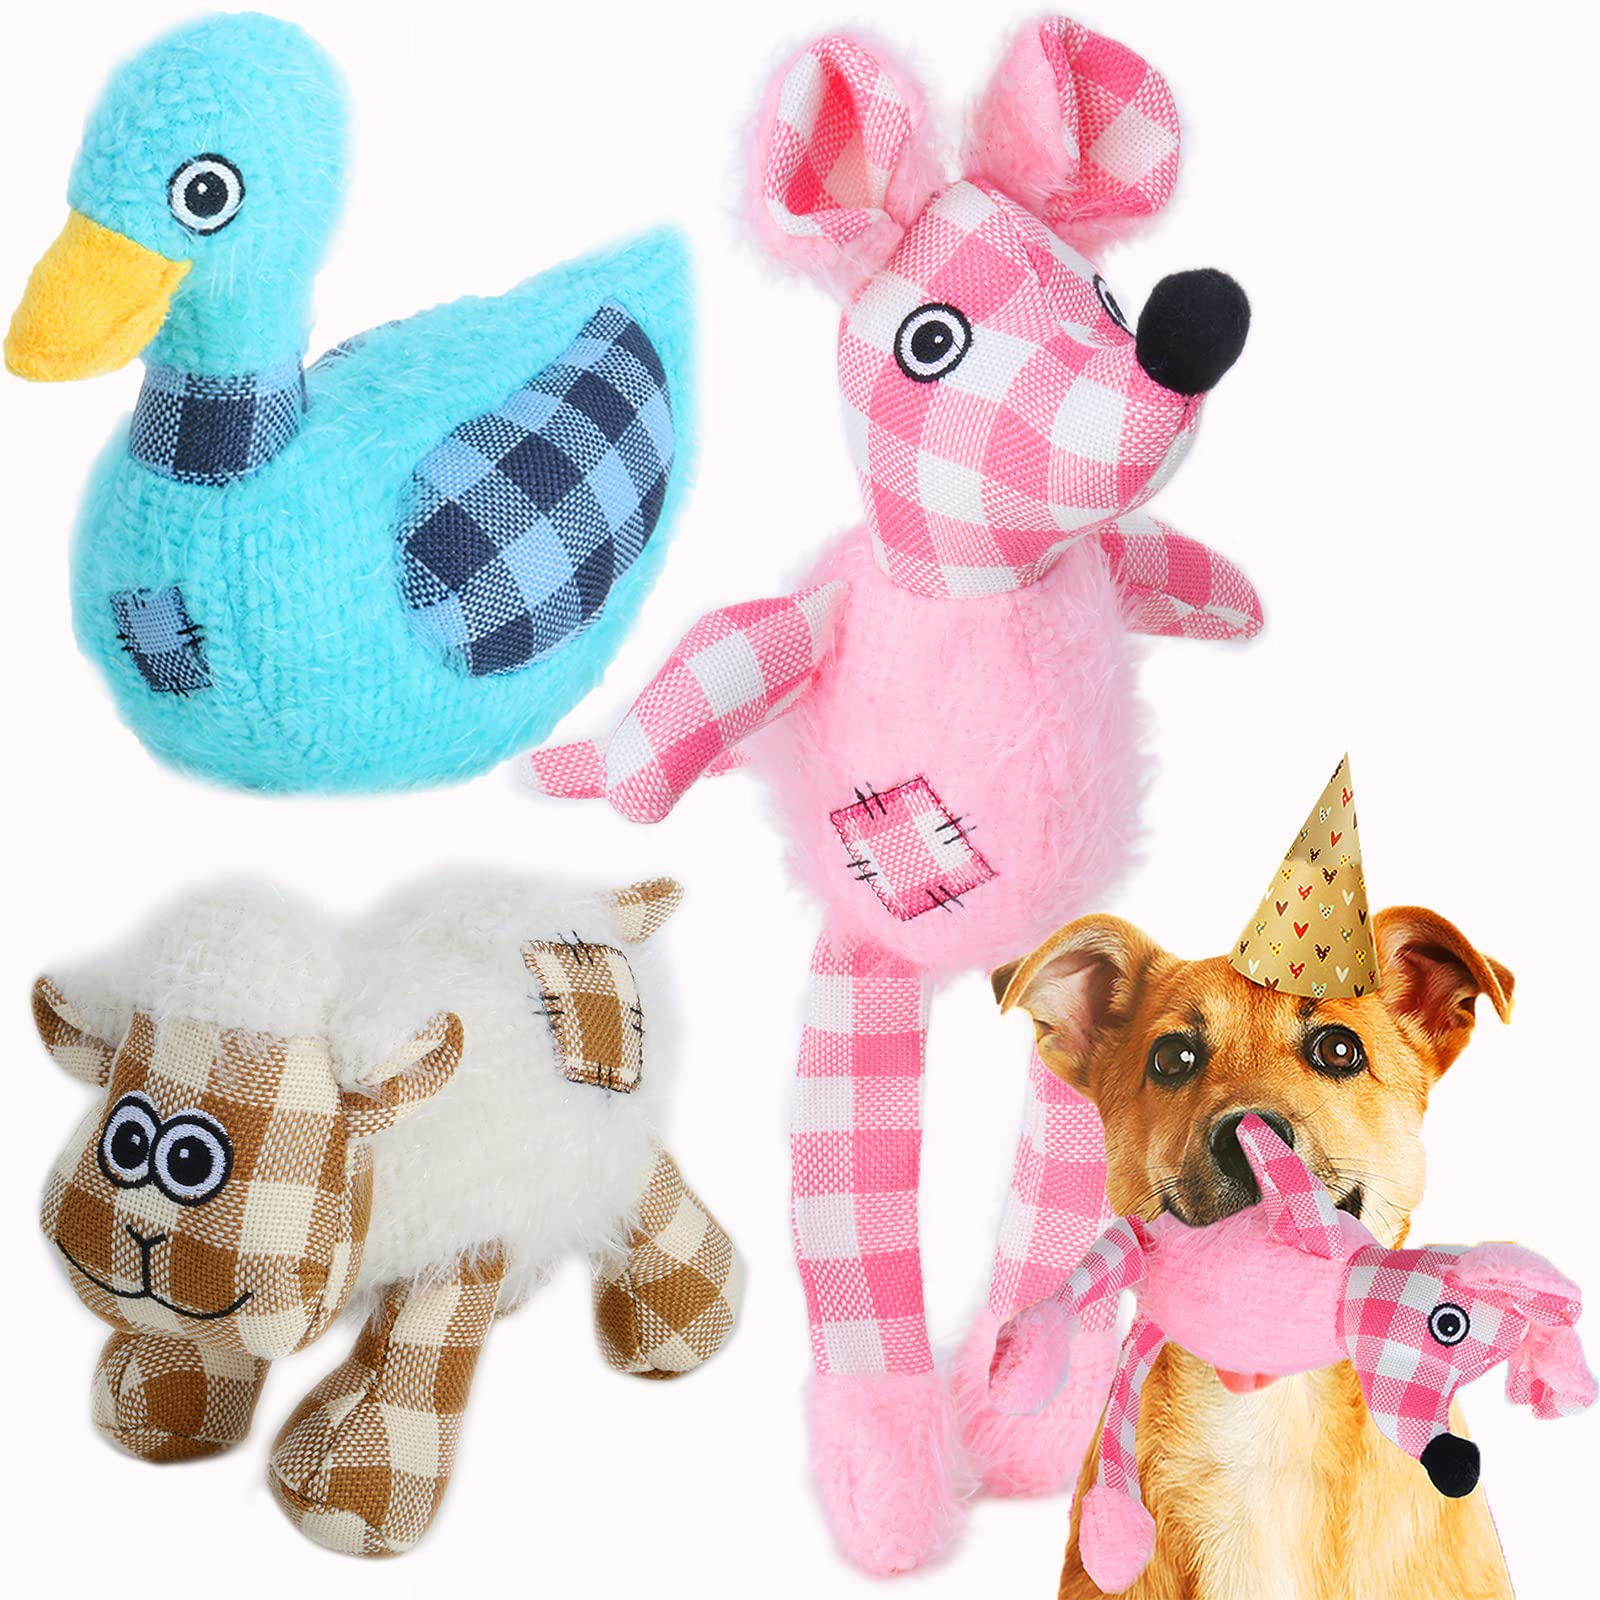 KINJUWEE 3Pcs Durable Squeaky Dog Toy for Puppies GiftsLovely Plush Fluffy Toy